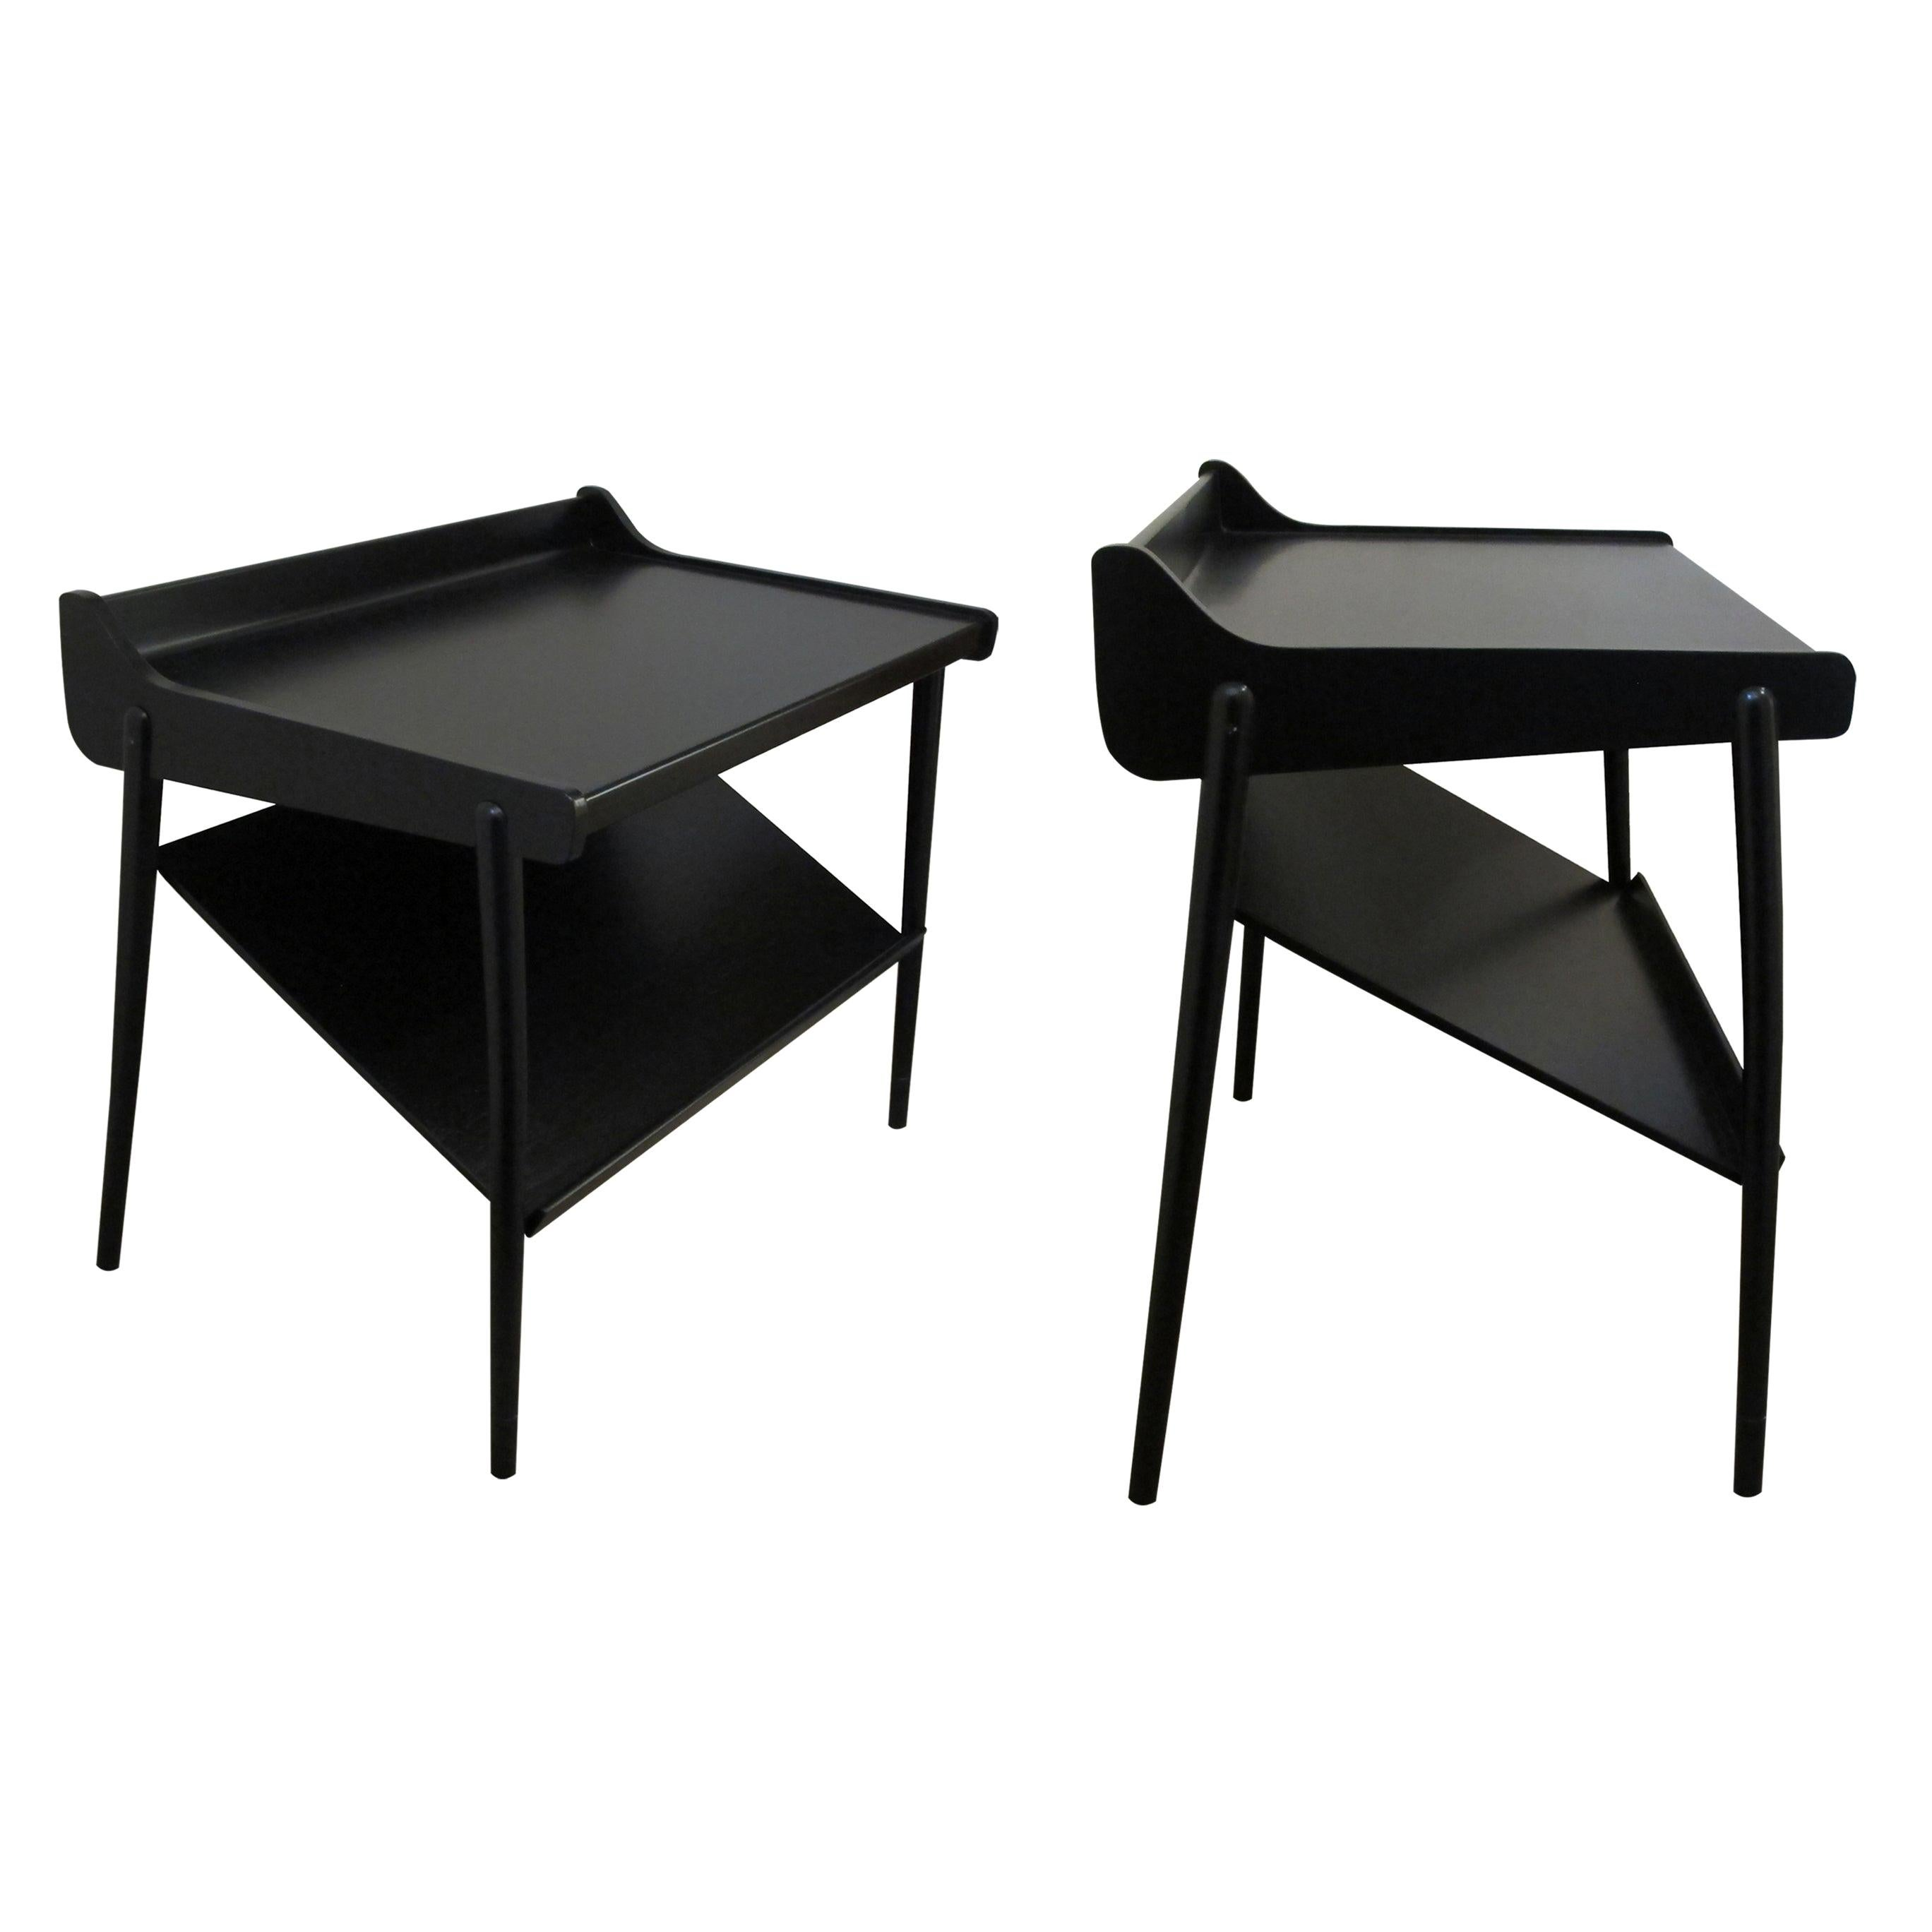 Pair of Midcentury Scandinavian Two-Tier Ebonized Bedside Tables or End Tables